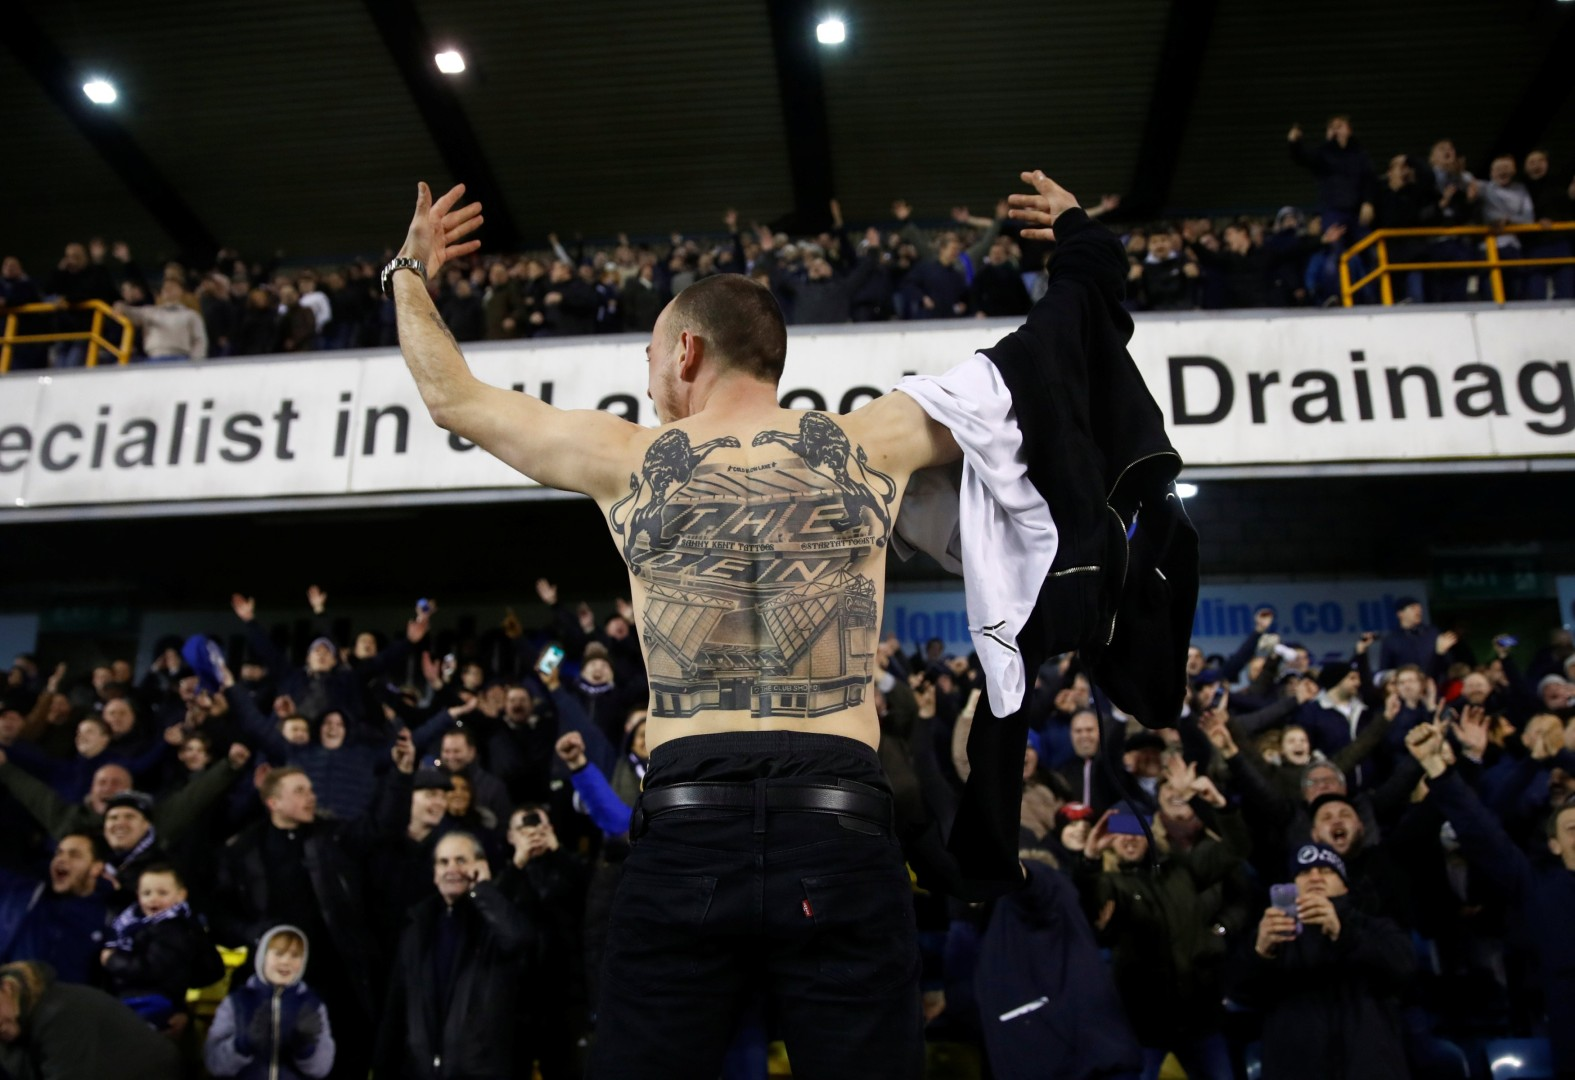 Millwall and Everton supporters fighting show football violence has died down, but not died out – and it's driven by 'hoolifans' | South China Morning Post